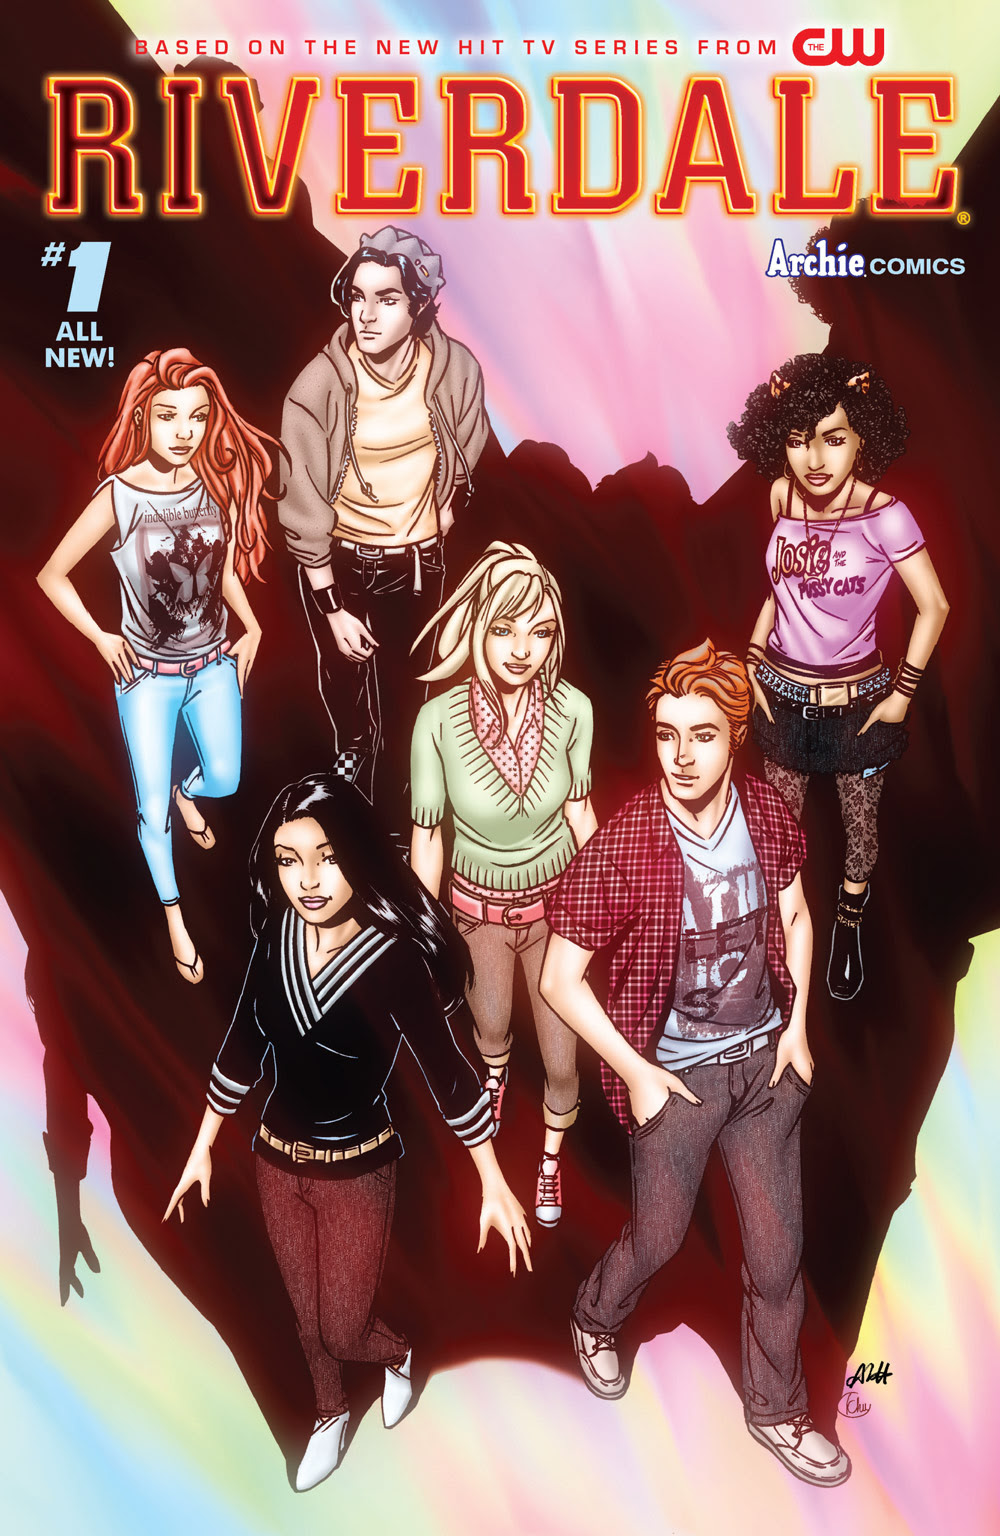 Riverdale #1 cover